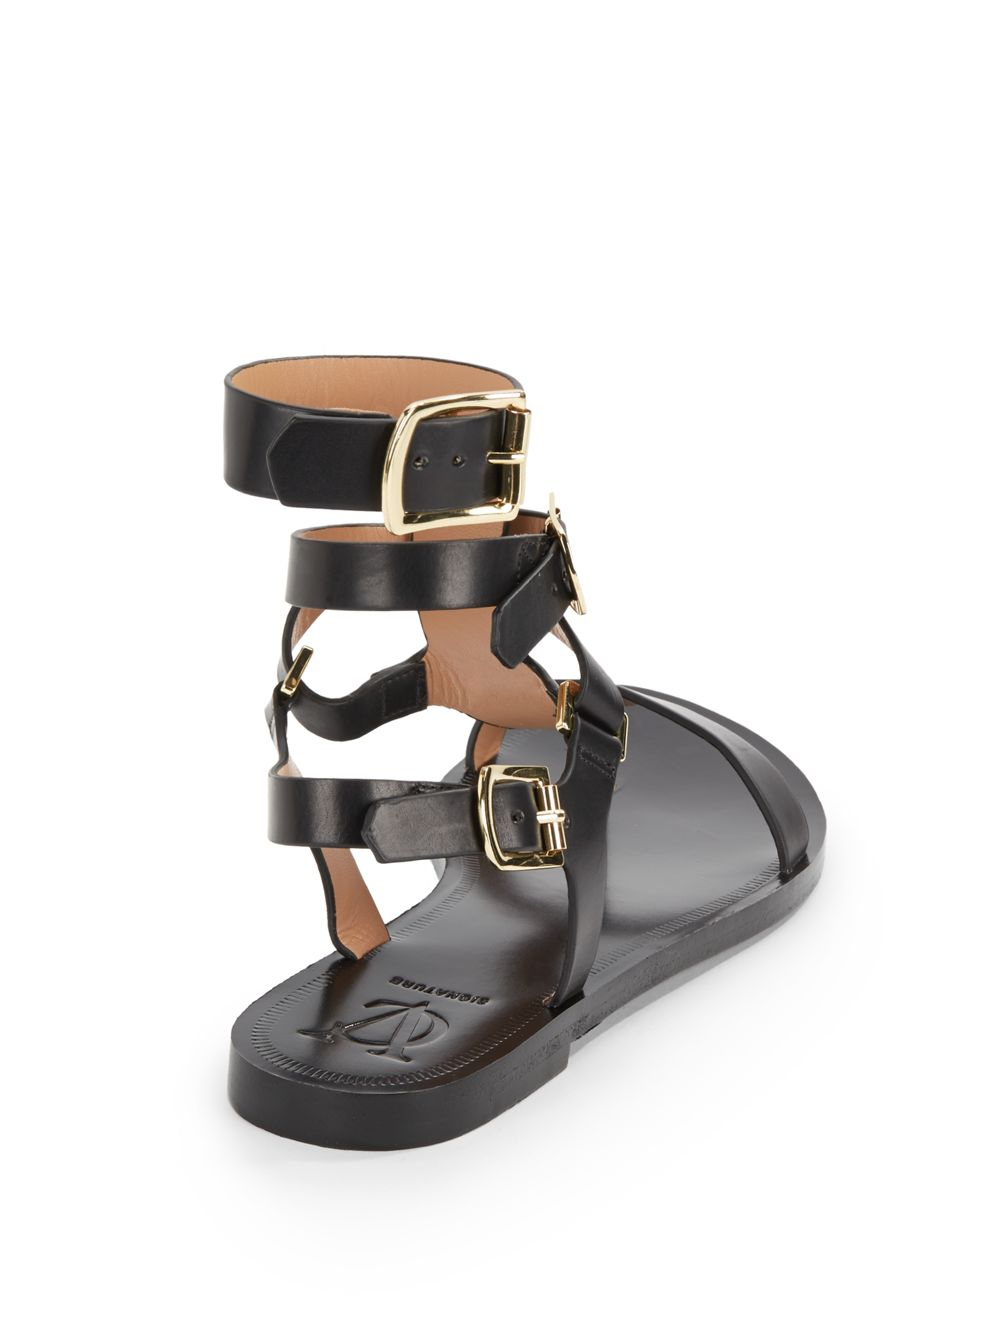 8a1ce8c911c Lyst - Vince Camuto Signature Leather Thong Gladiator Sandals in Black